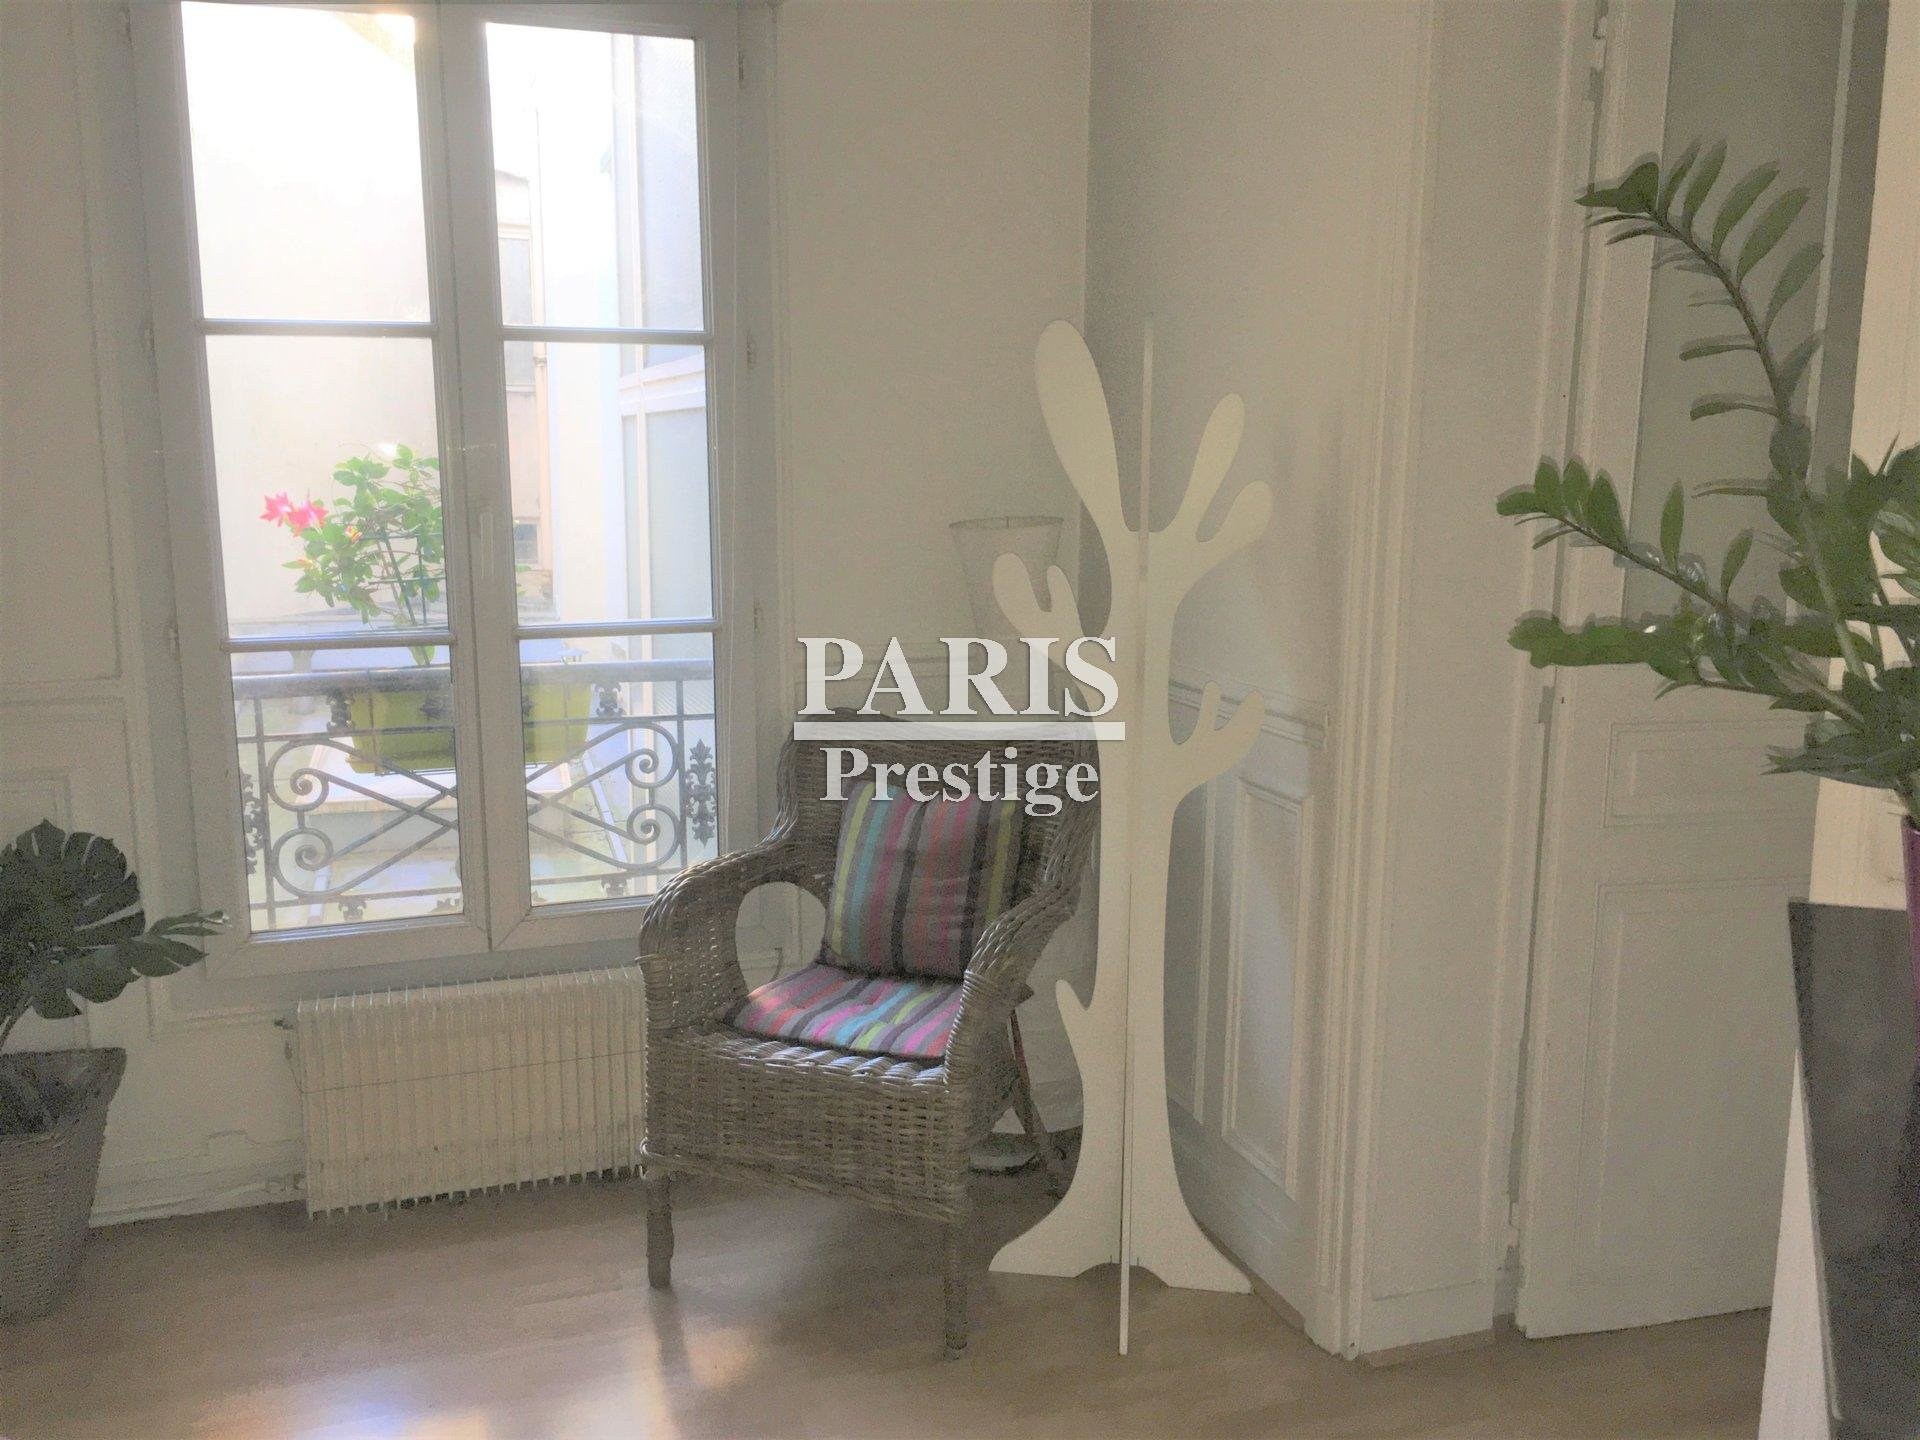 Sale Apartment - Paris 5th (Paris 5ème) Val-de-Grâce